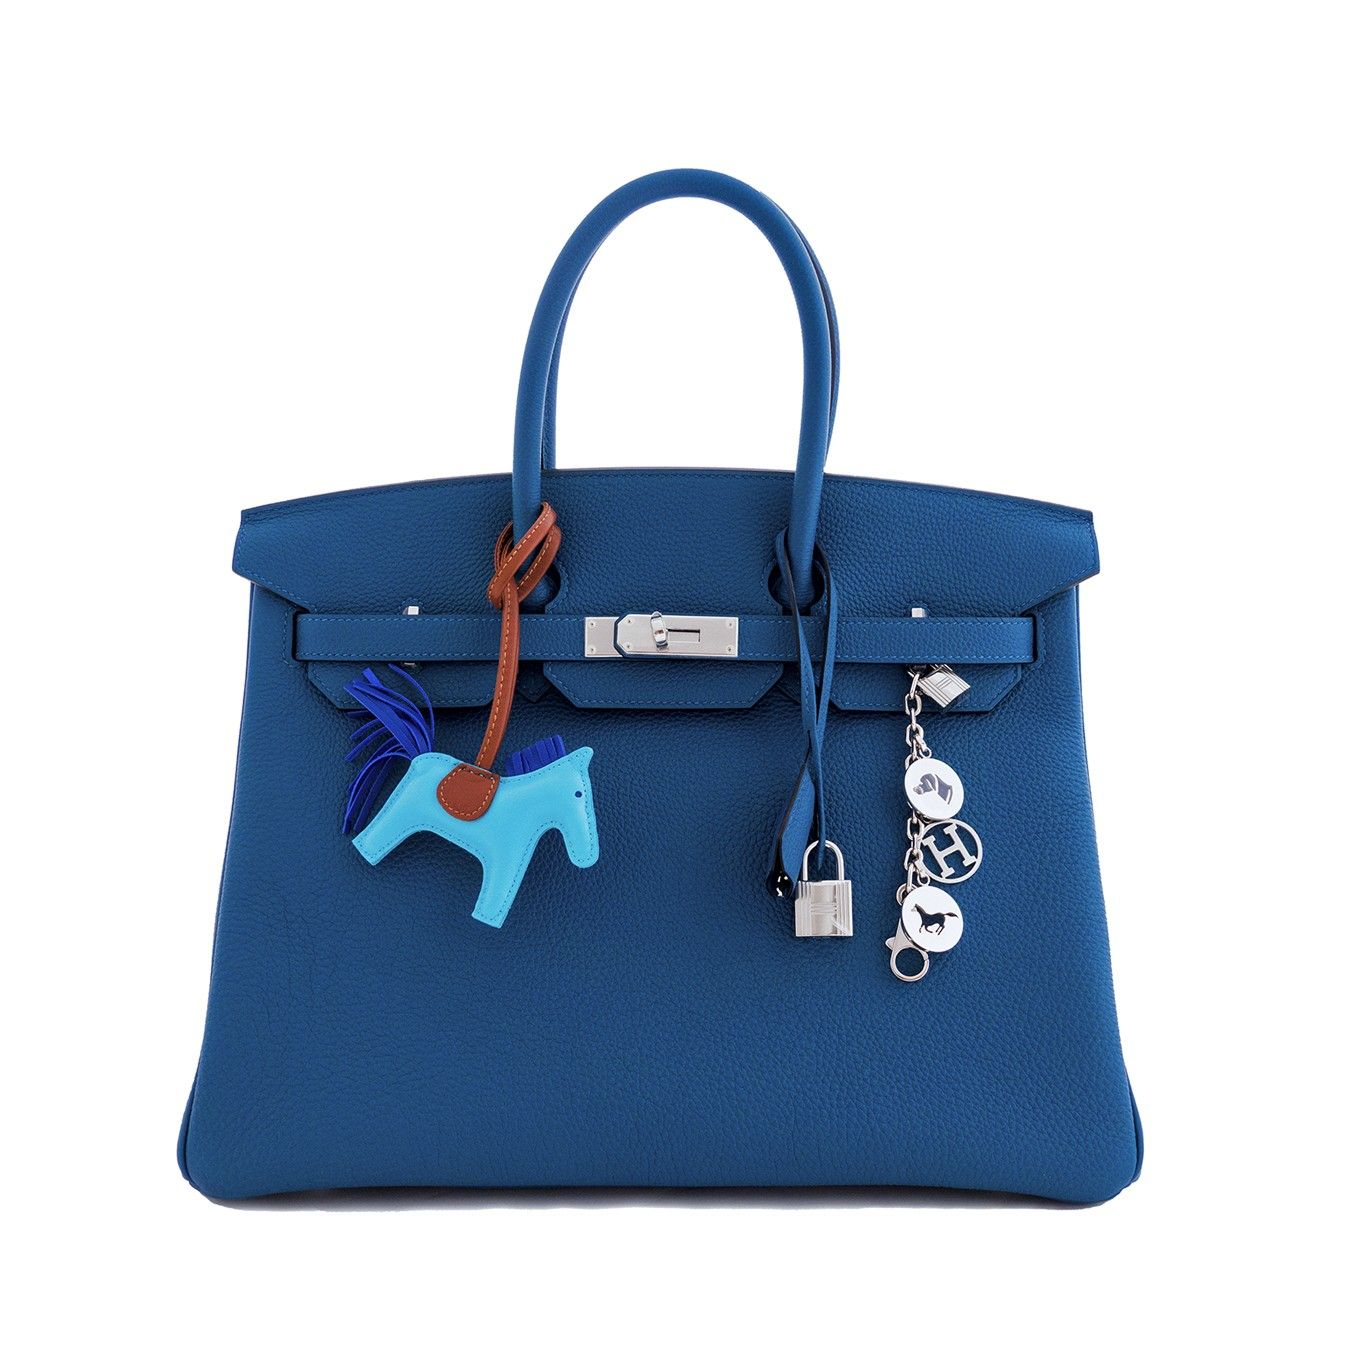 Hermès Blue de Galice Togo  Birkin 35cm with Palladium hardware. Blue de Galice a is rarely produced hue. A medium blue that is rich and complements almost every color.